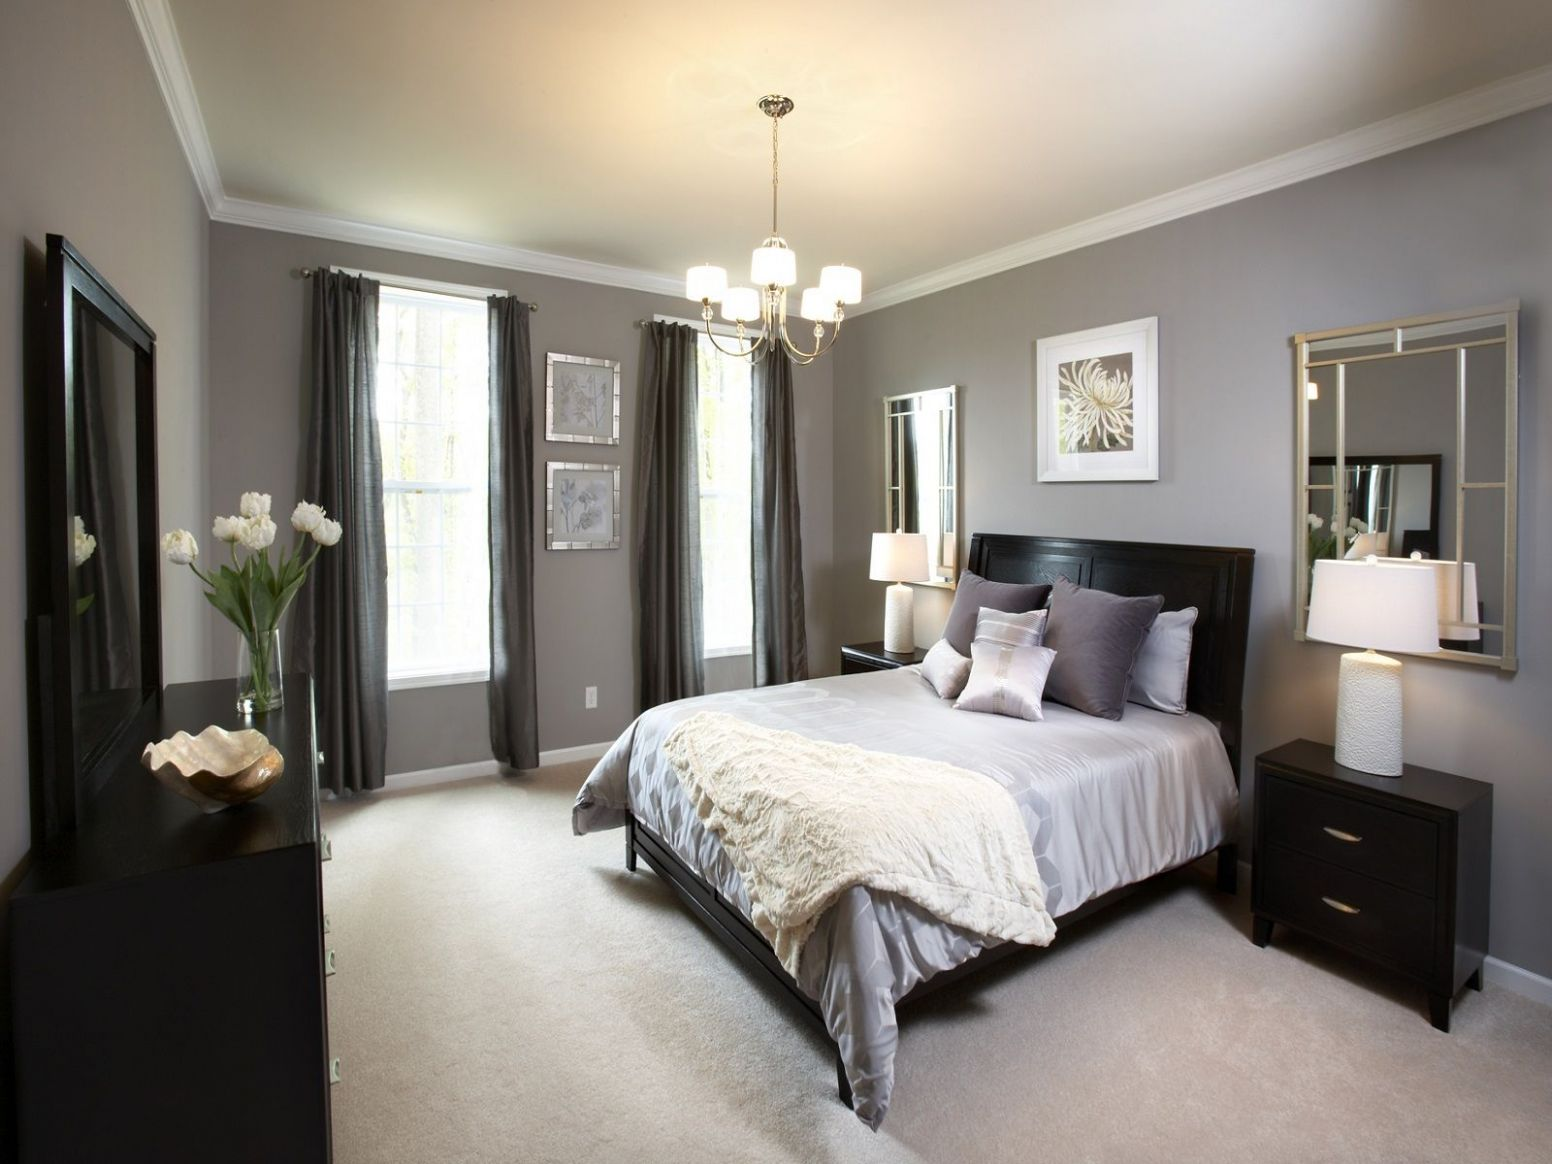 Master Bedroom Paint Colors With Dark Furniture | Home bedroom ..